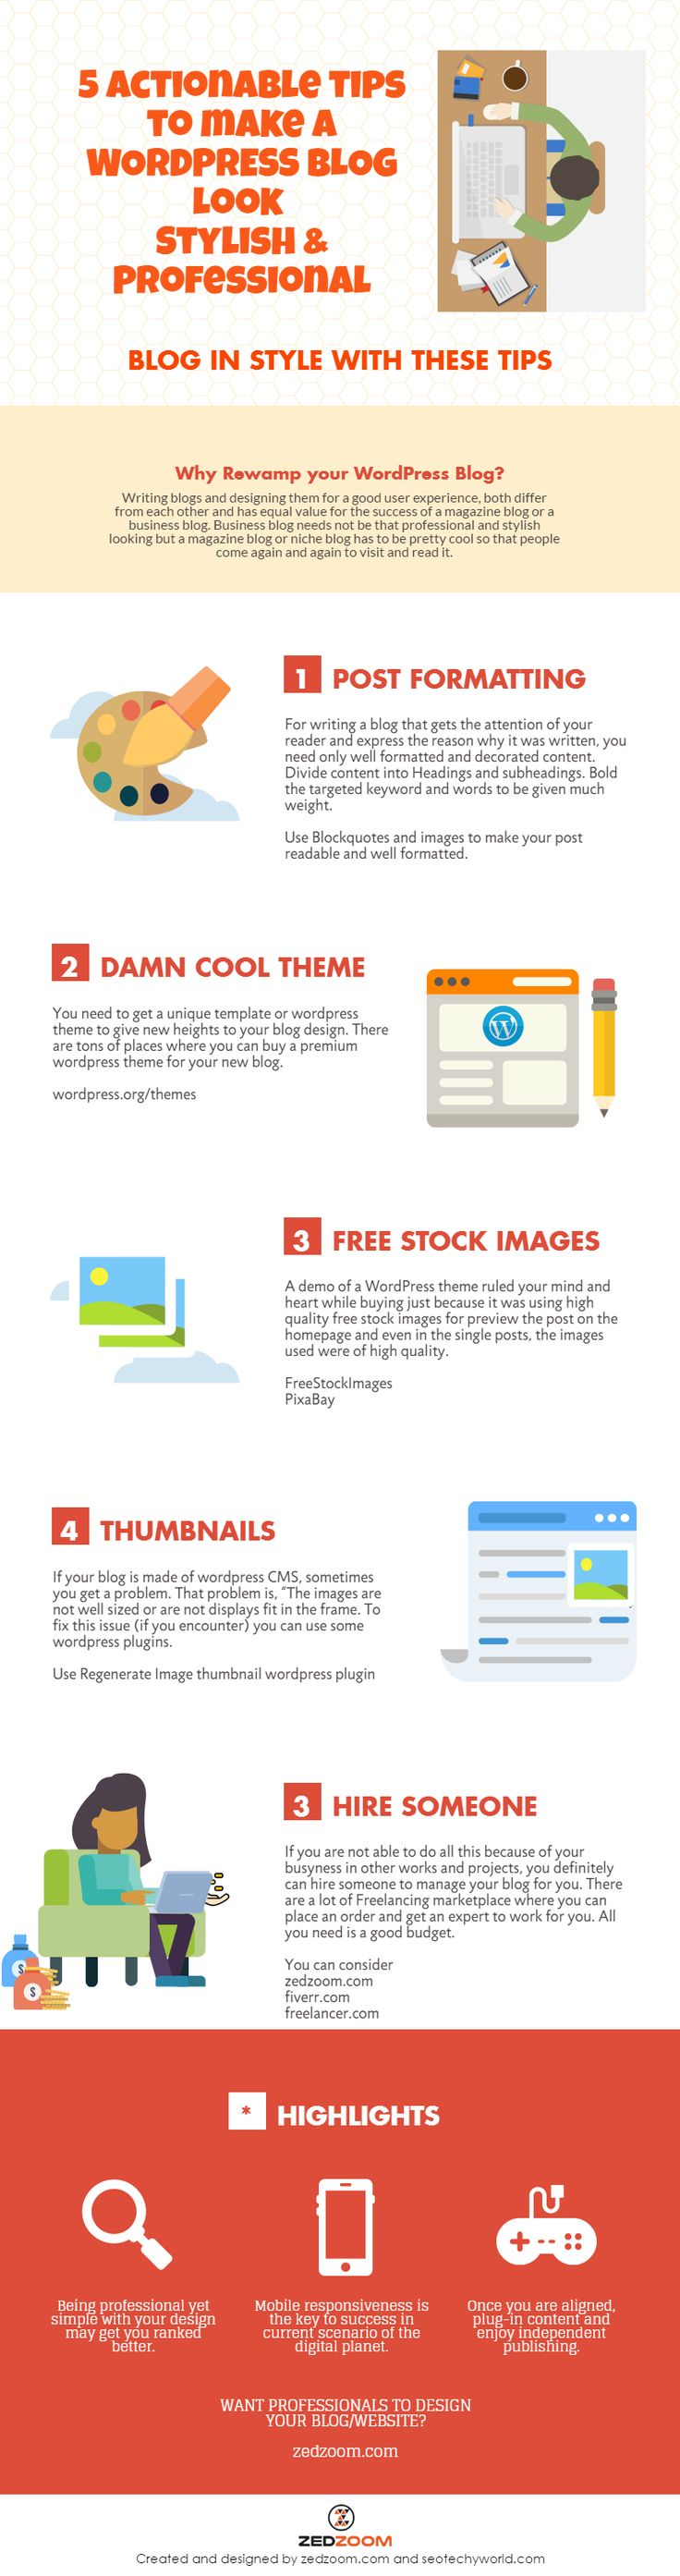 Rewamp your WordPress Blog with these Design Tips